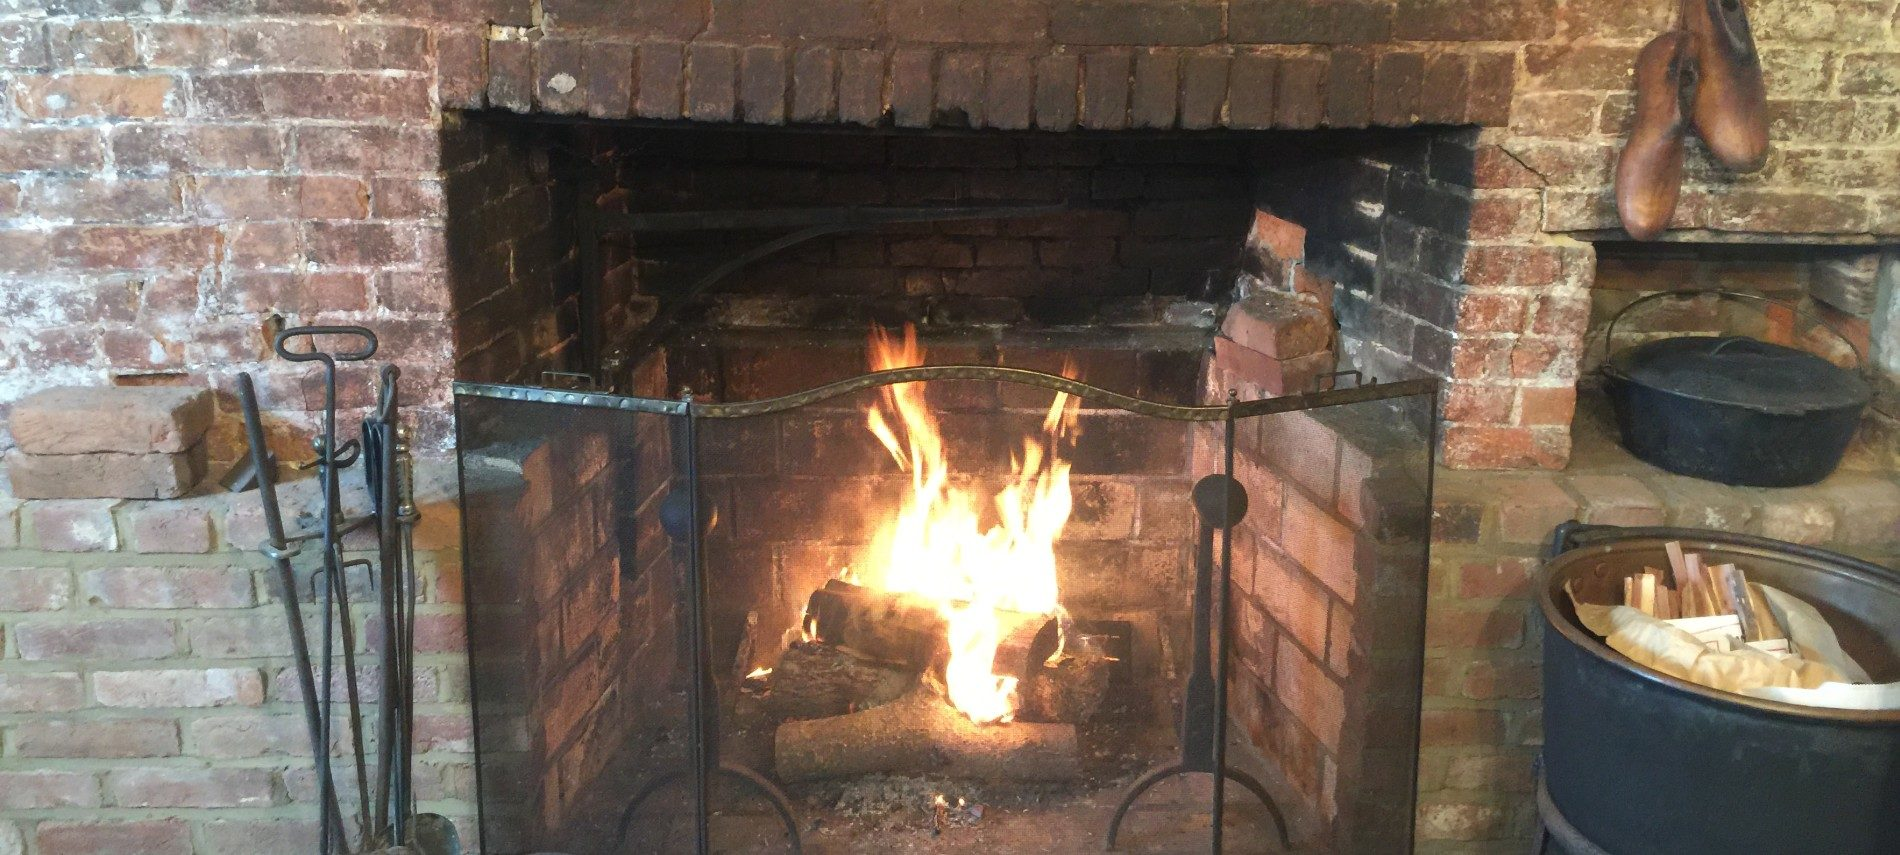 Featured image of the fireplace at the Old Caledonian